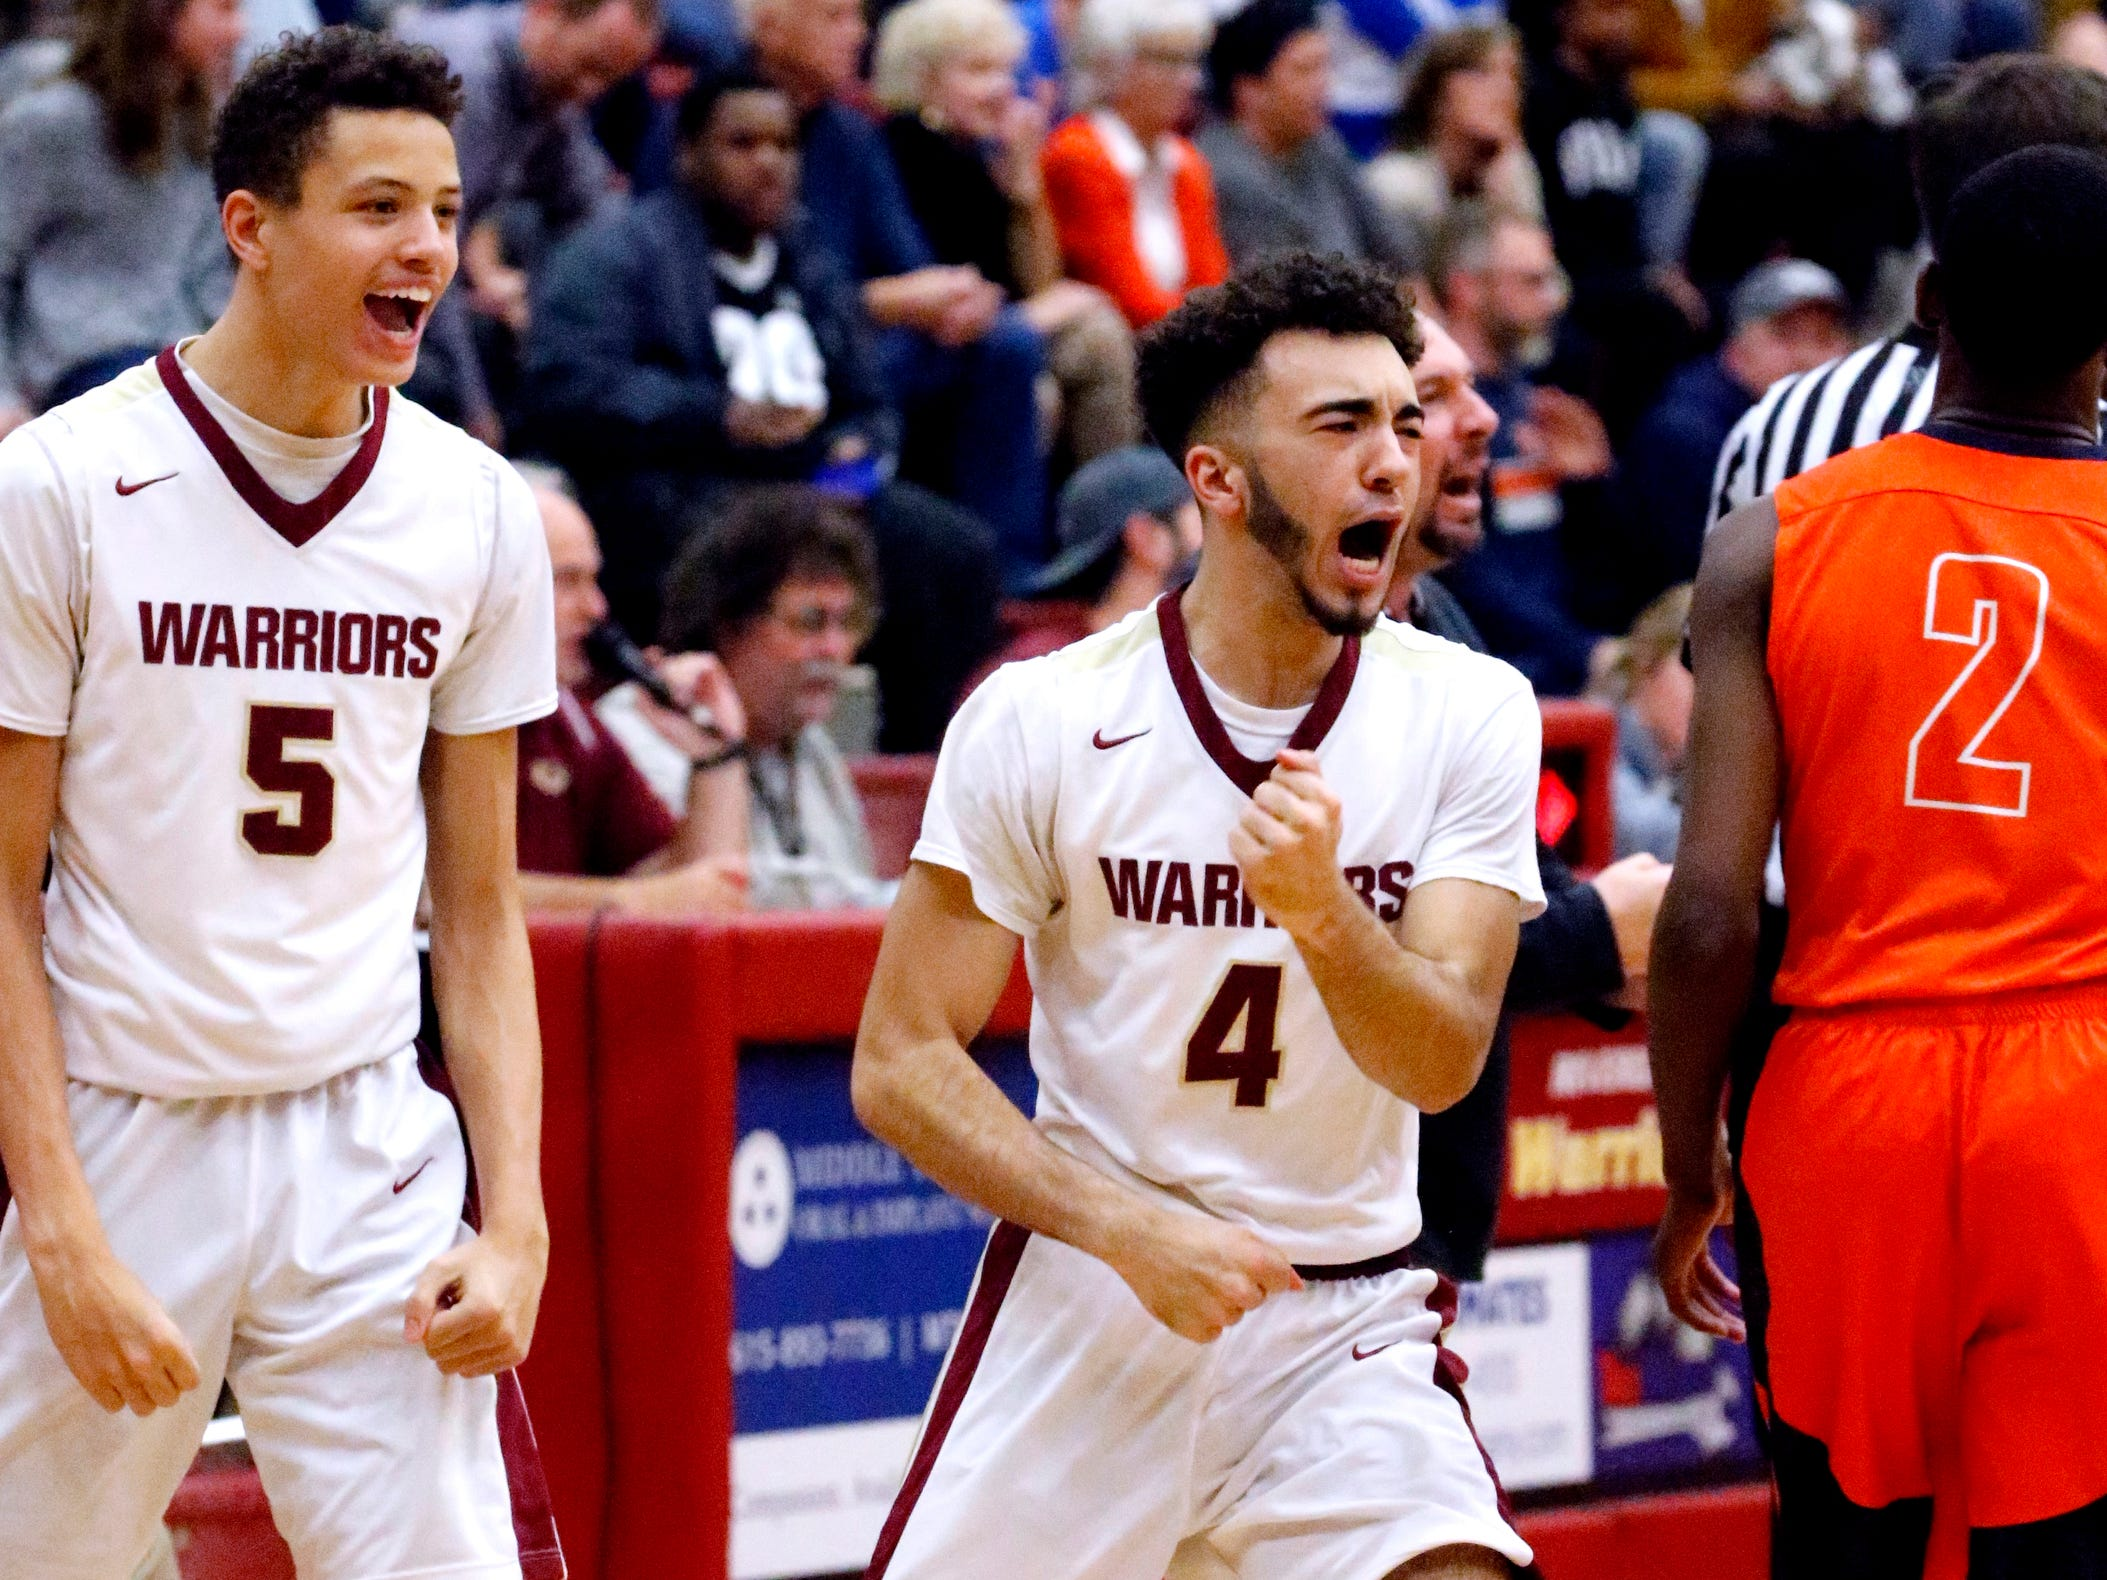 Riverdale's Kai Crawford (4) celebrates a play as the team comes in for a time-out during the game against Blackman on Tuesday Jan. 8, 2019.